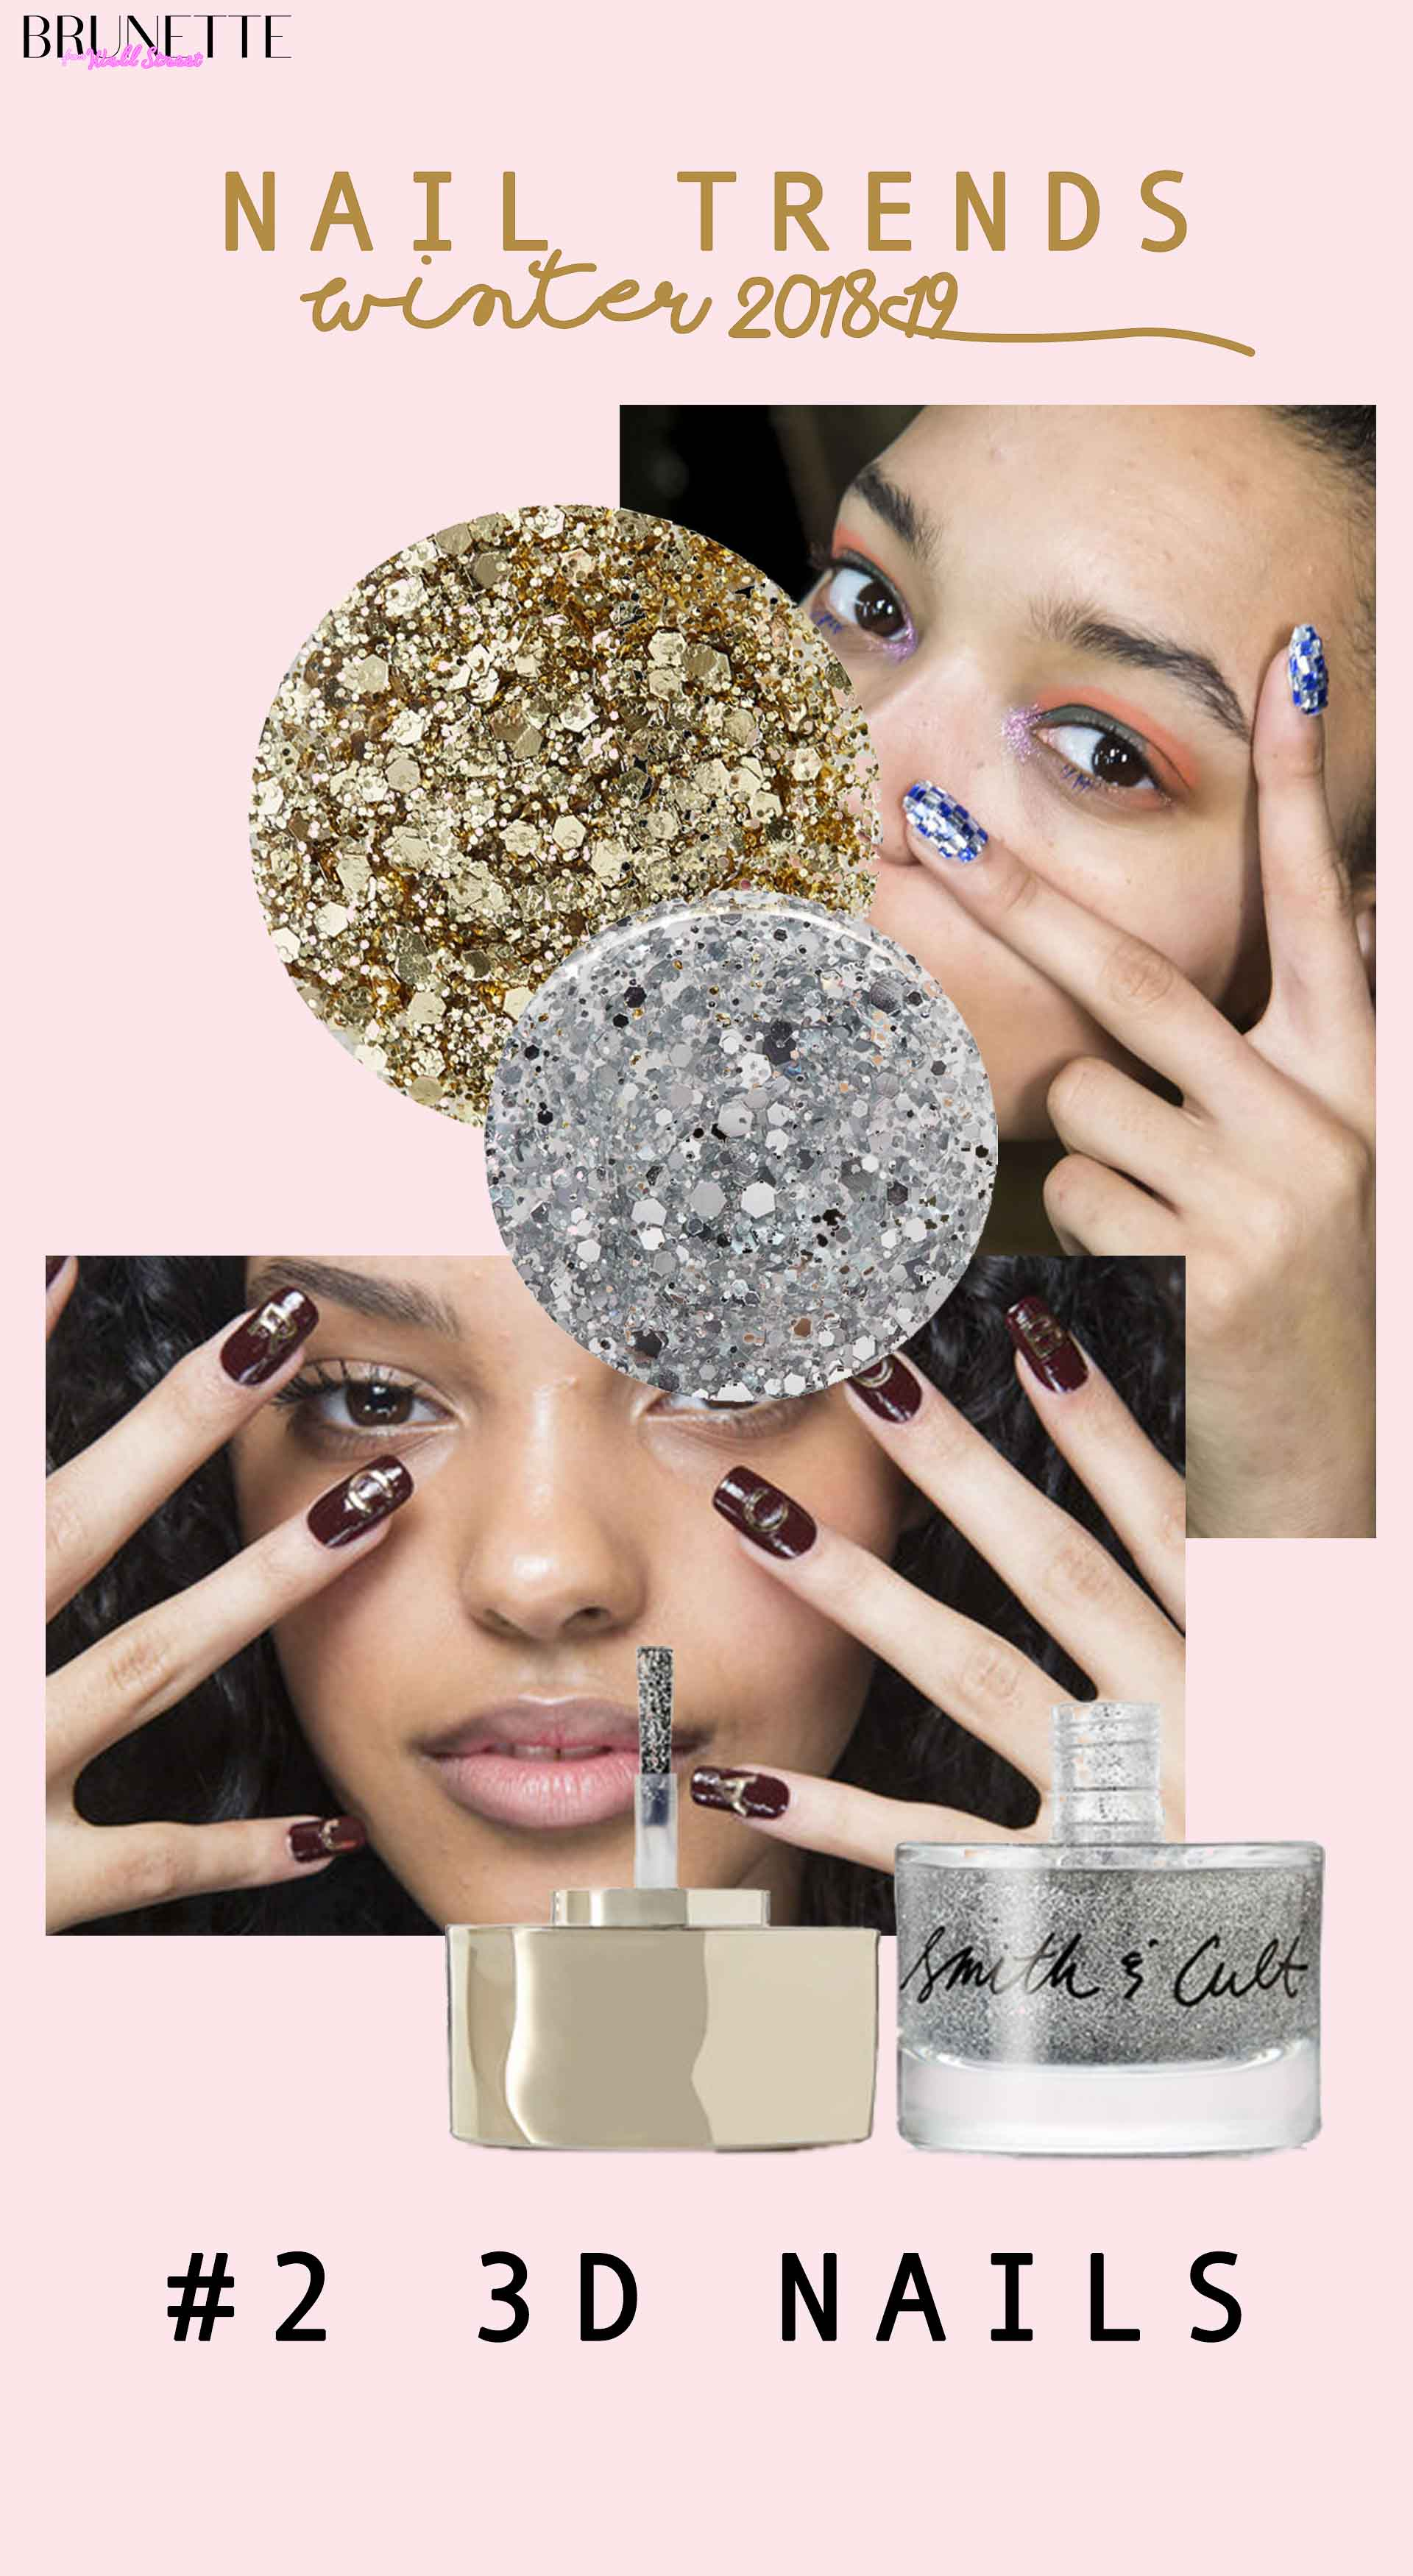 glitter nail polish, graphic nail design with text overlay nail trends winter 2019 #2 3D nails